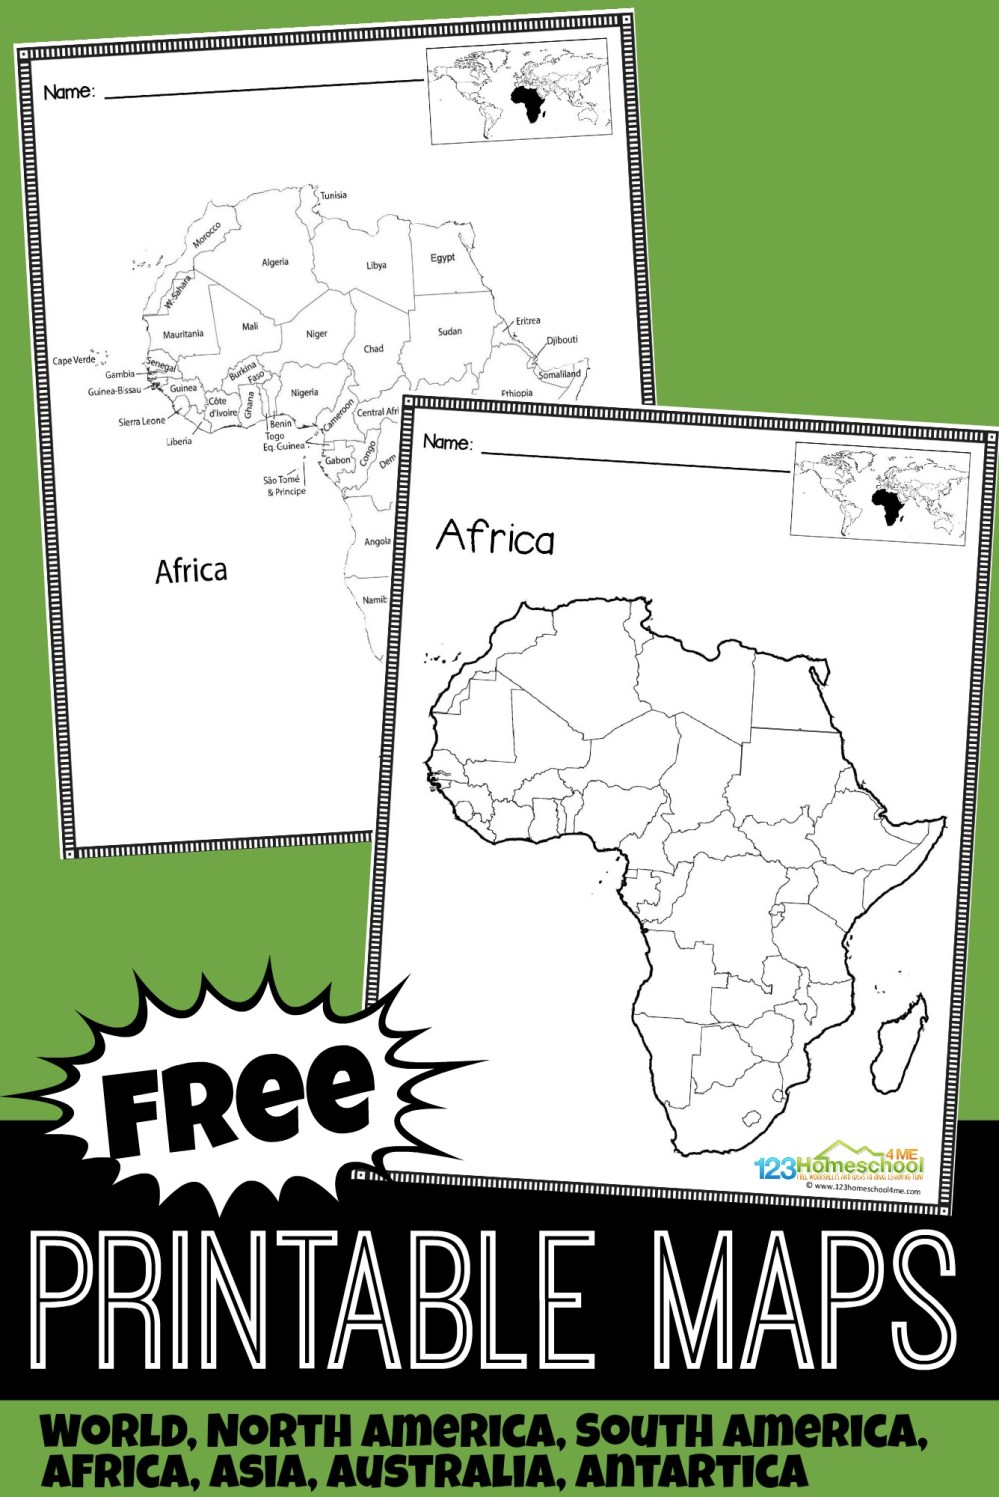 medium resolution of FREE Printable Maps for Kids